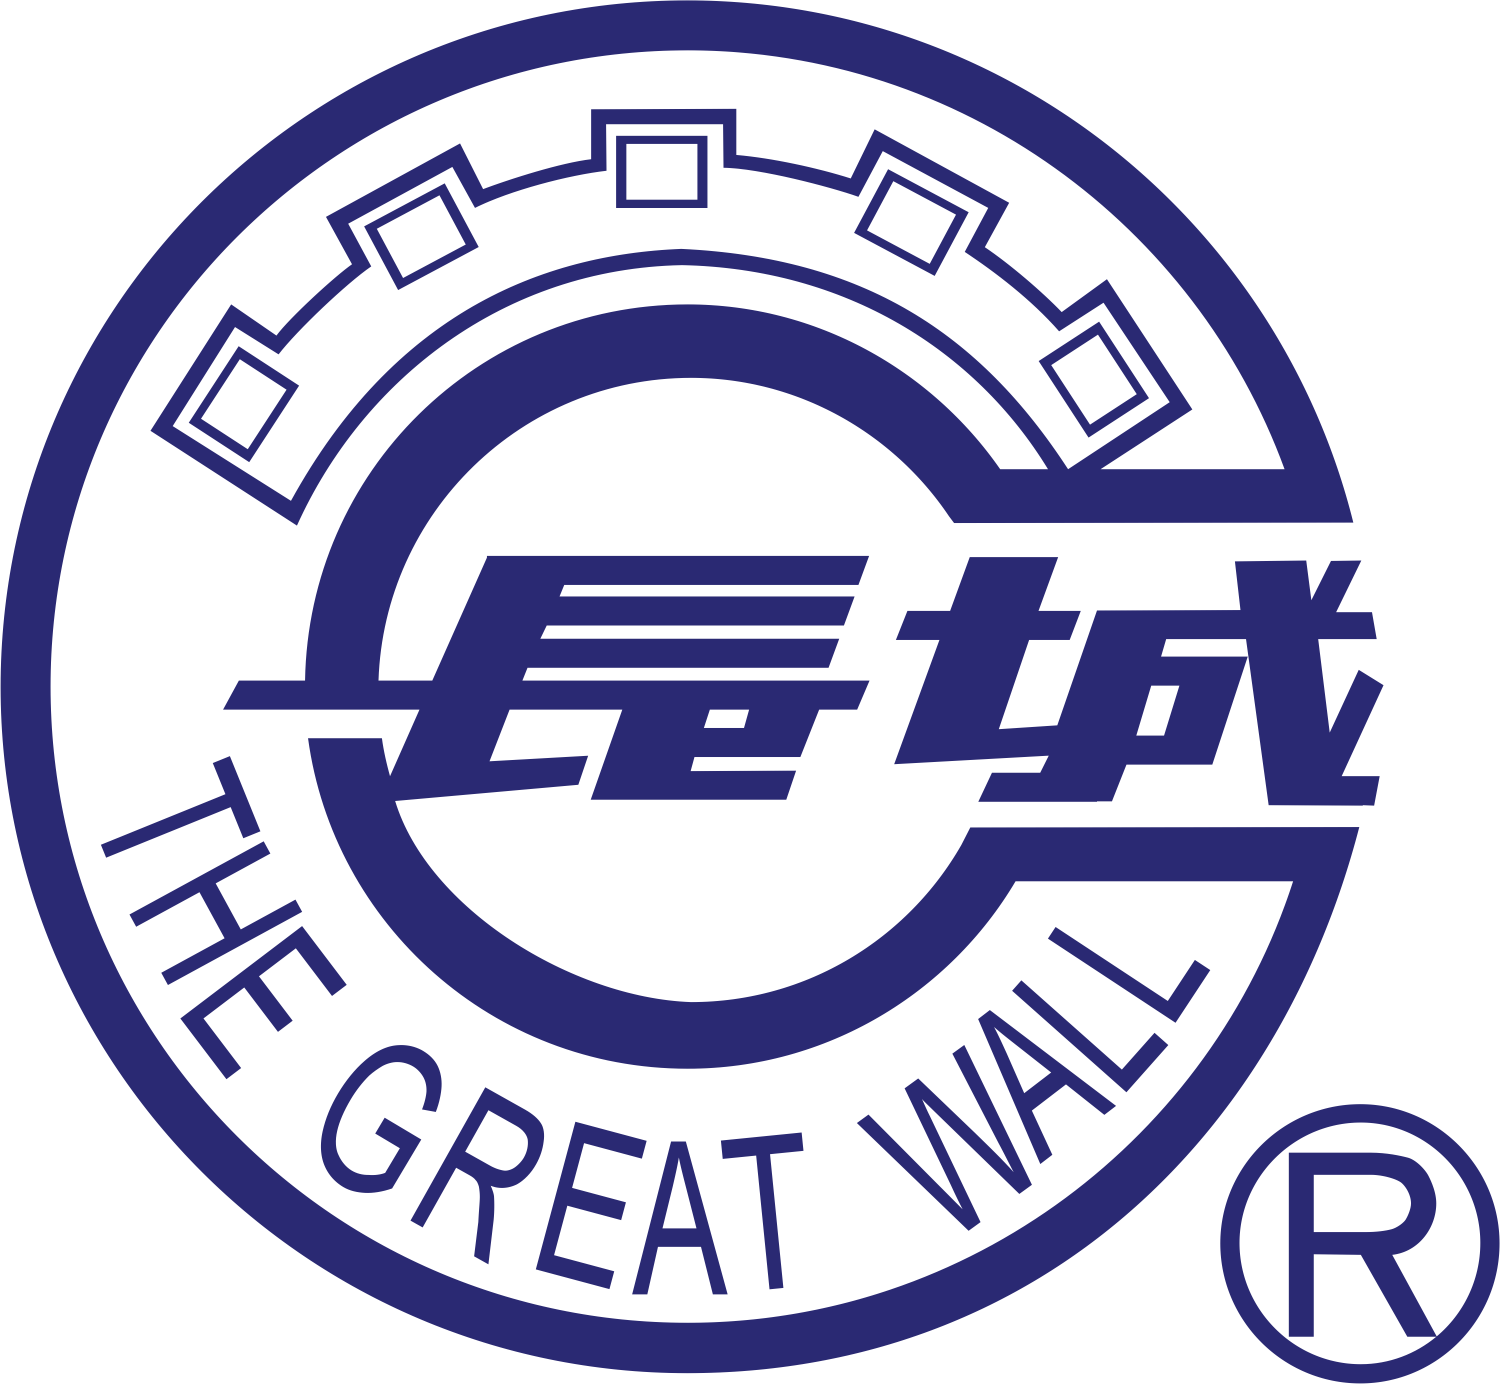 NINGBO GREAT WALL PRECISION INDUSTRIAL CO.,LTD.